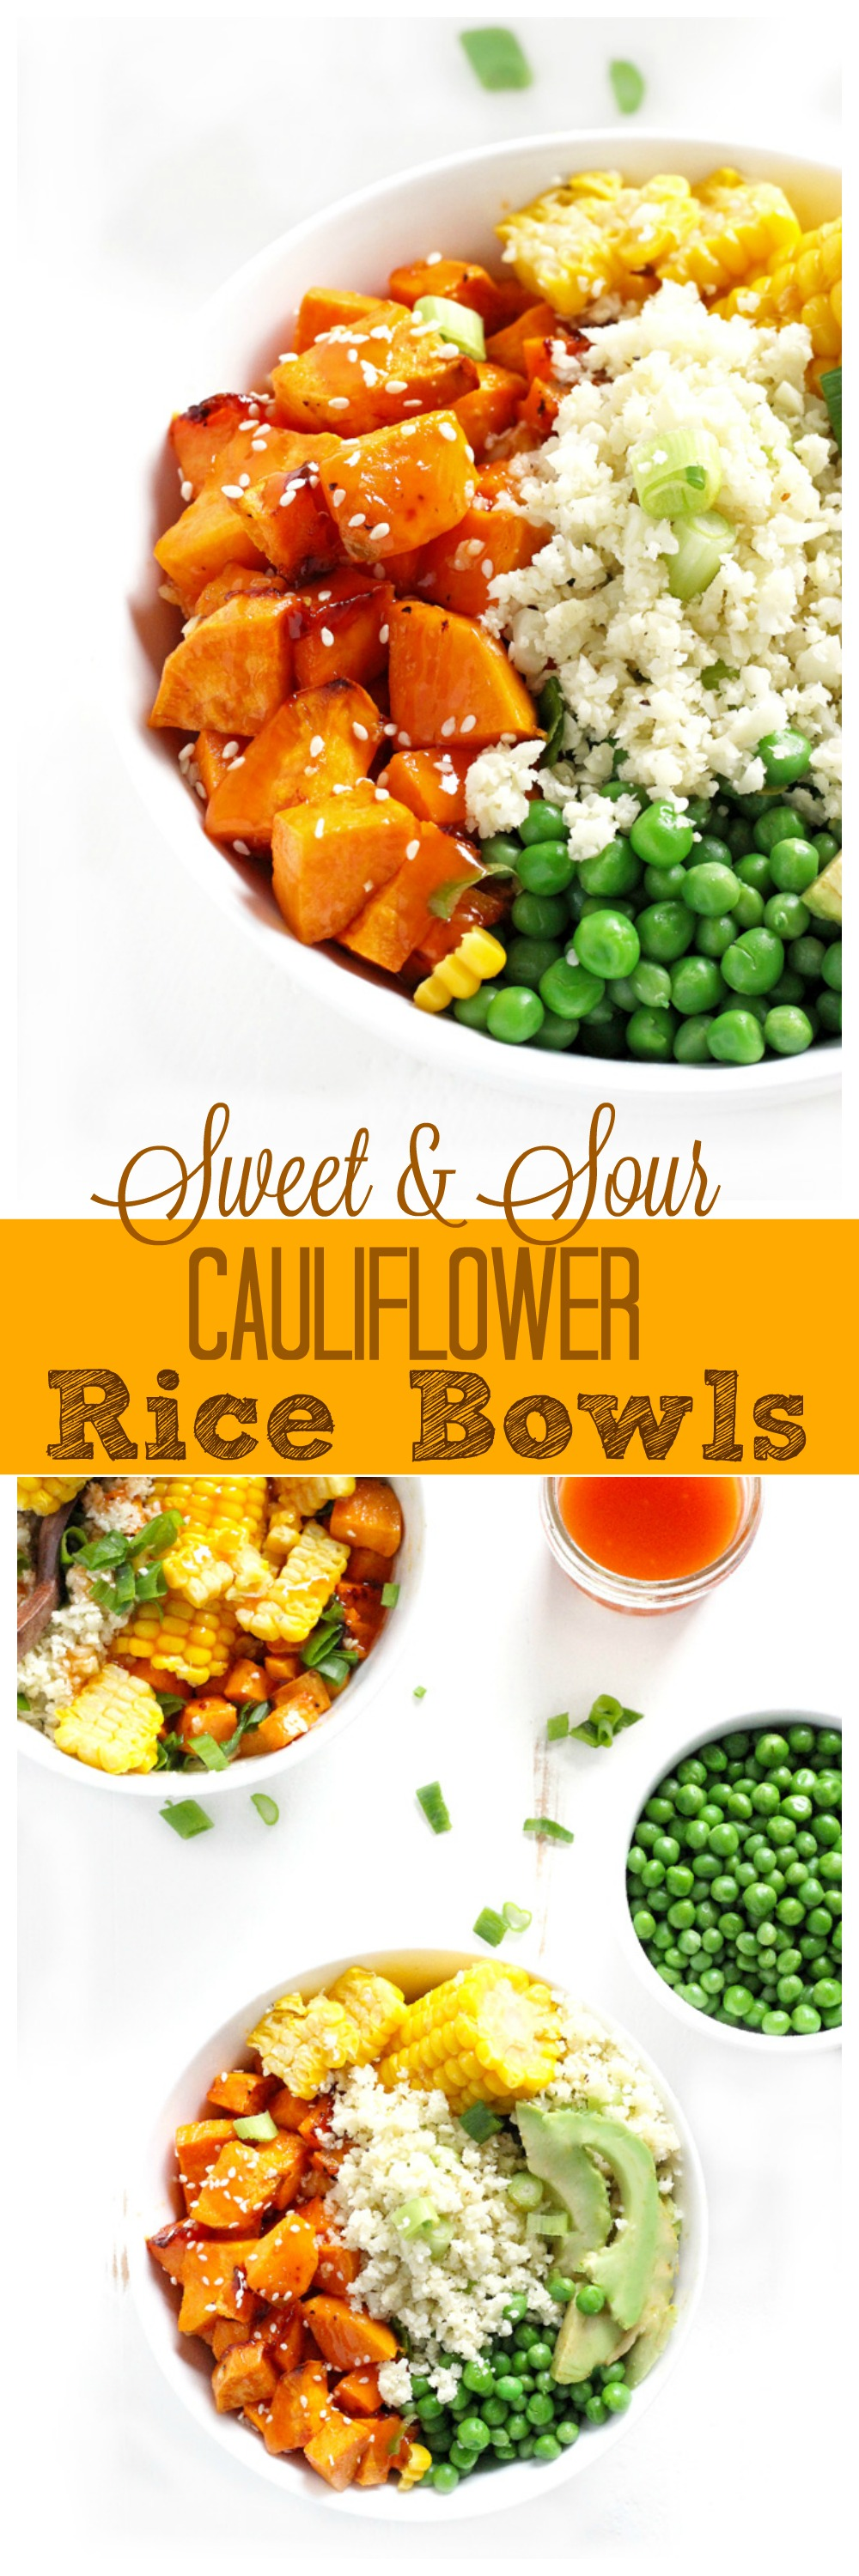 Sweet and Sour Cauliflower Rice Bowls are a super easy meal packed with sweet and savory flavors. The perfect balance of healthy carbs, fats and proteins. NeuroticMommy.com #vegan #healthy